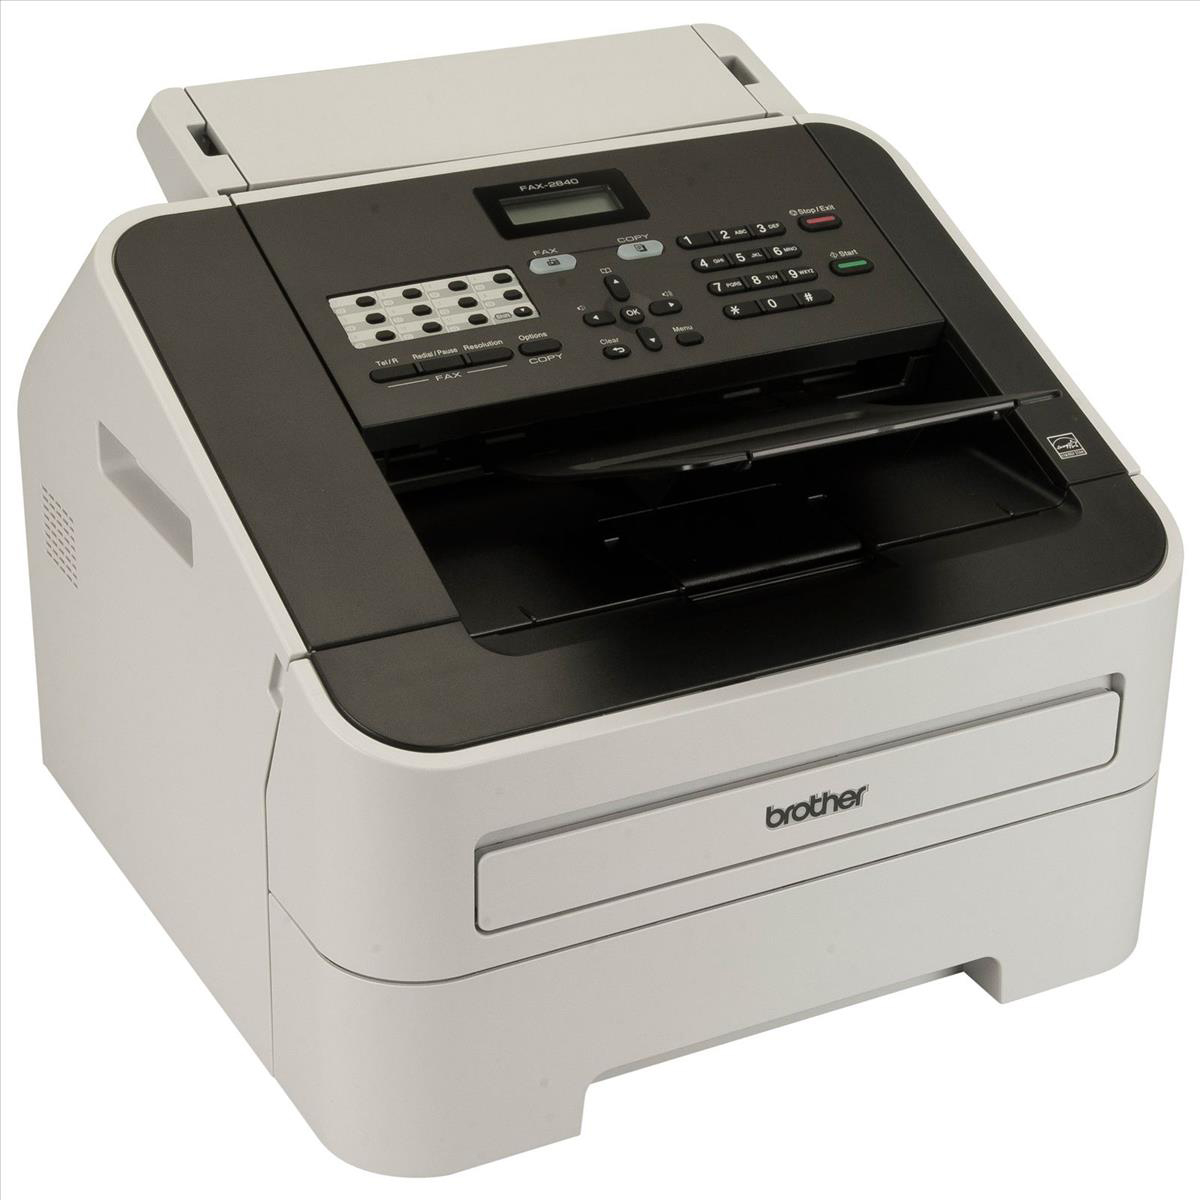 Image for Brother FAX2840 Mono Laser Fax Machine Ref FAX2840ZU1